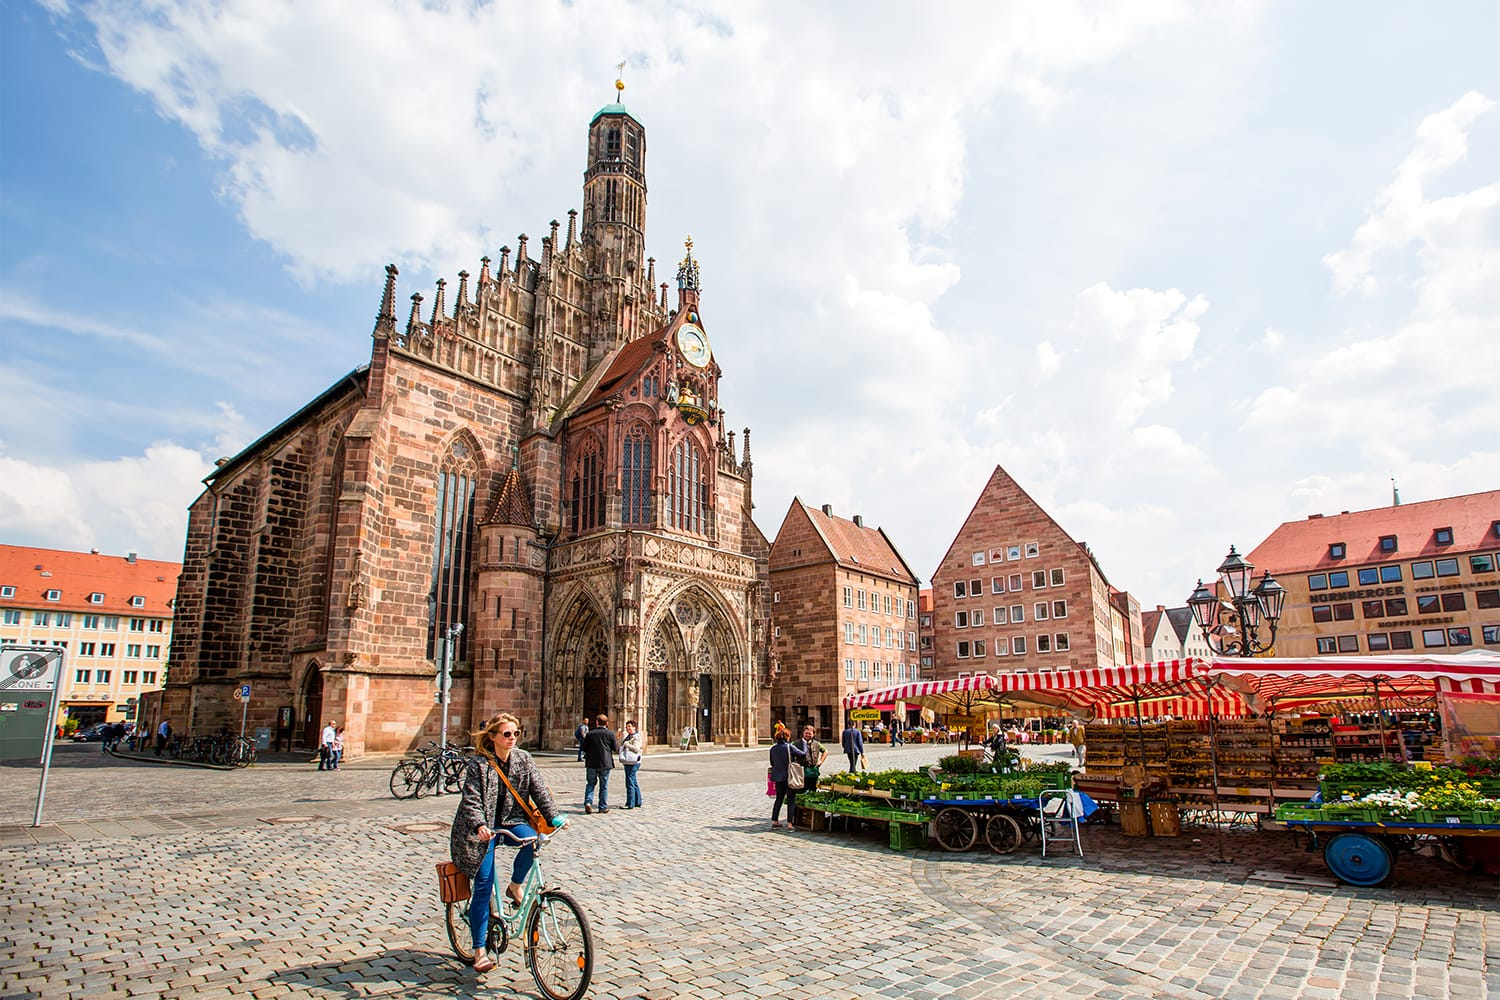 Hauptmarkt, the central square and Frauenkirche church of Nuremberg, Bavaria, Germany